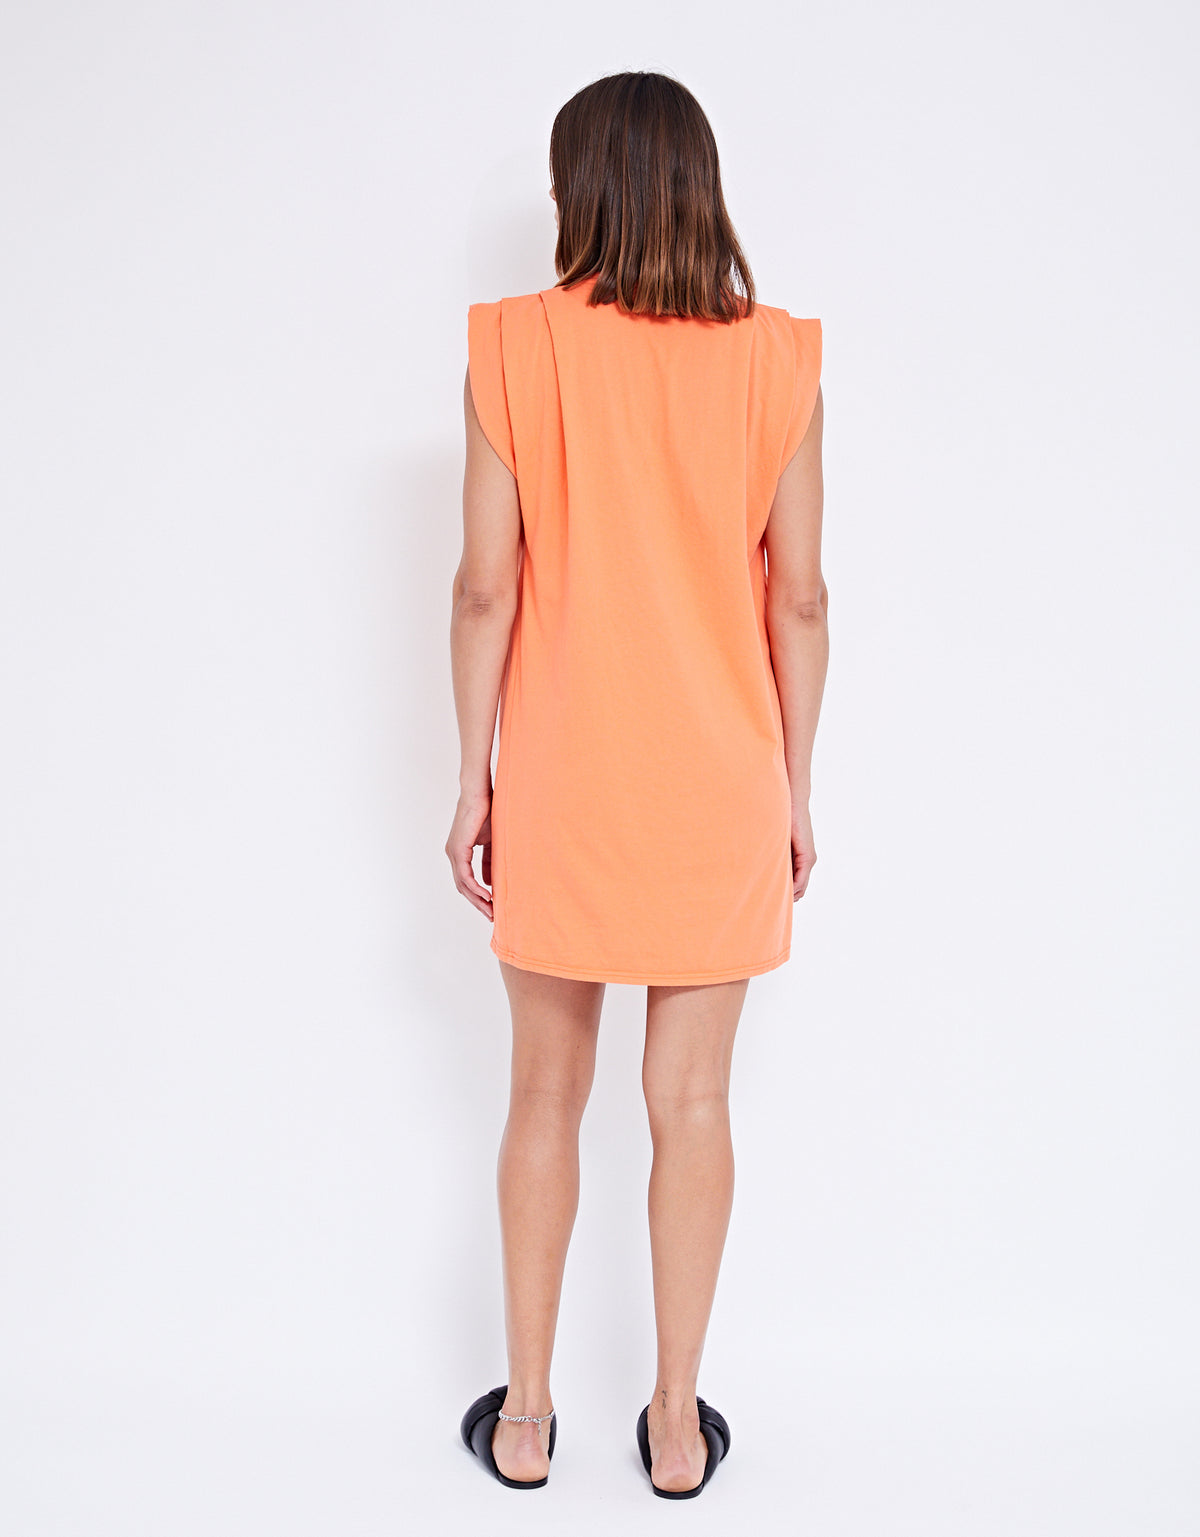 KASKADE TANK DRESS | FANTA